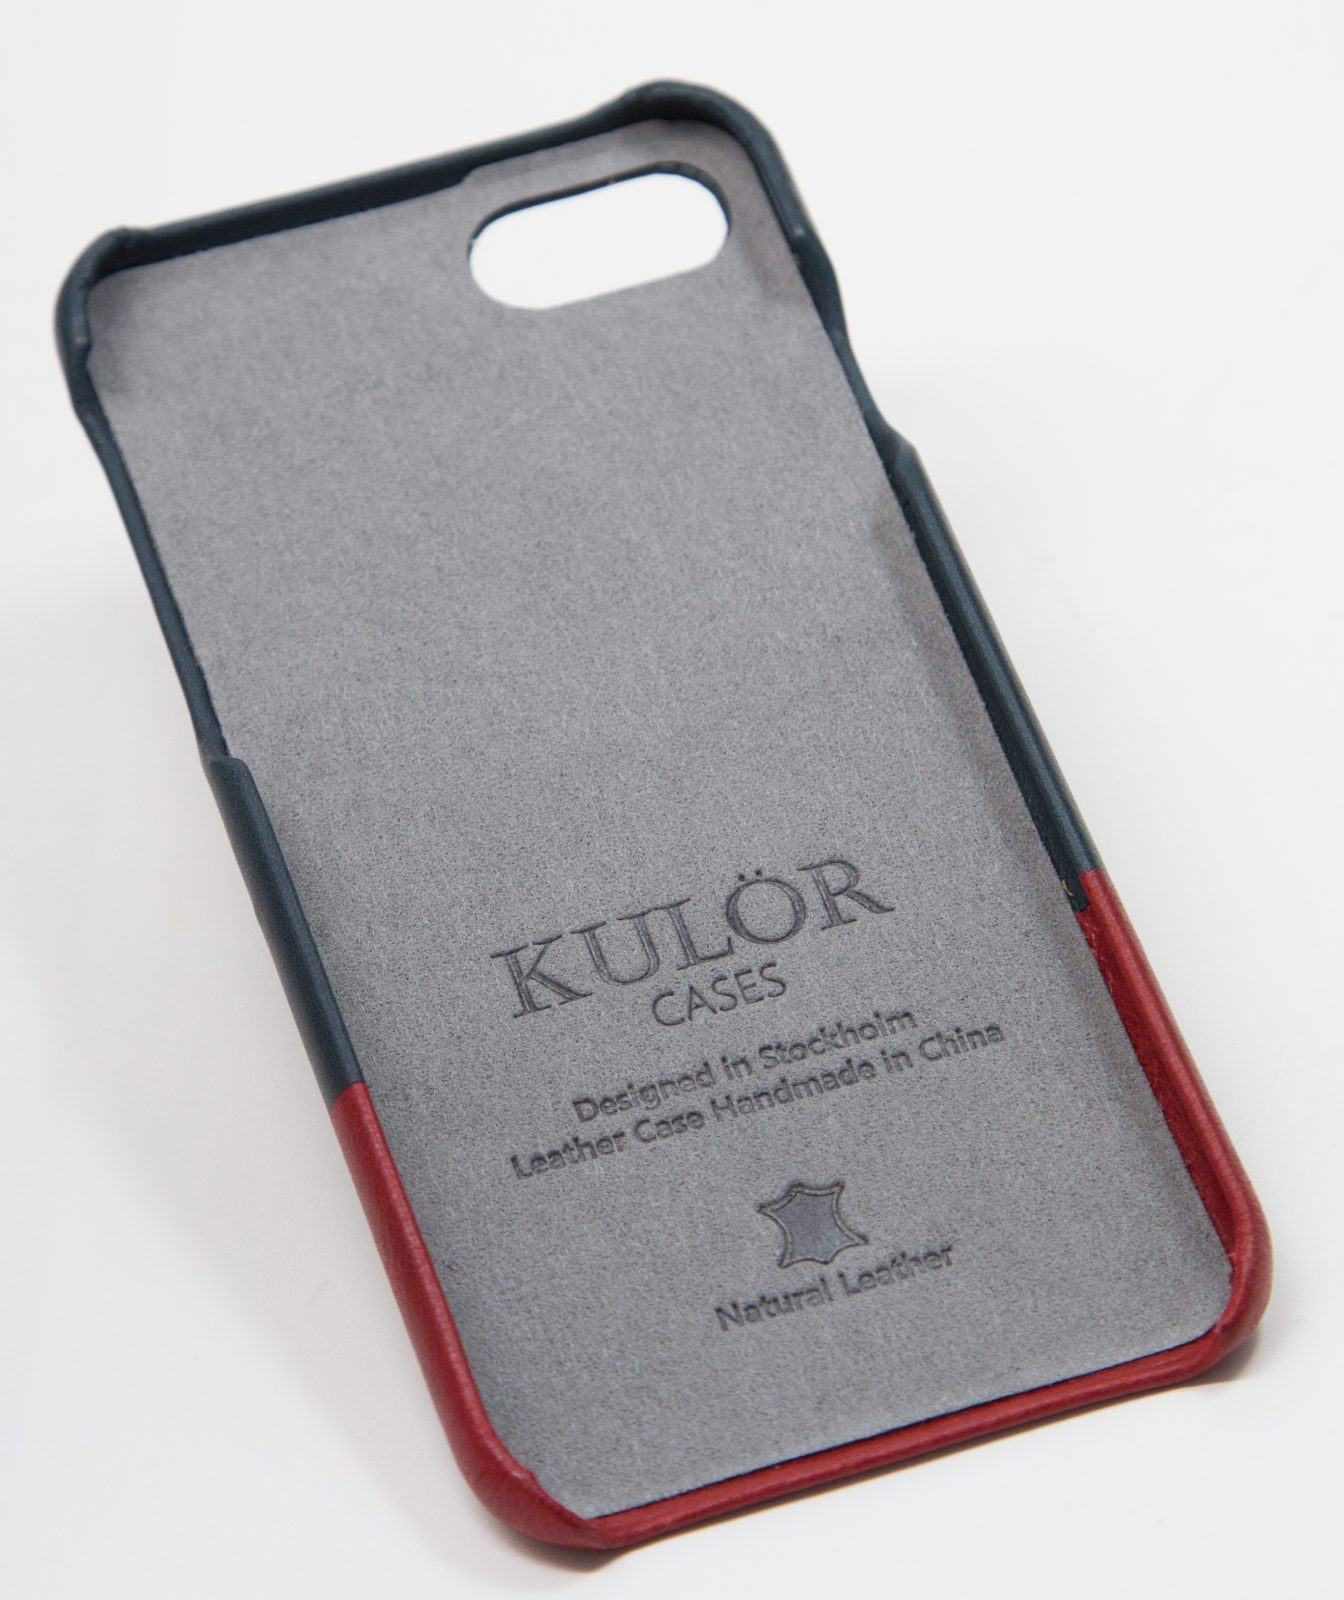 Kulor iPhoneケース